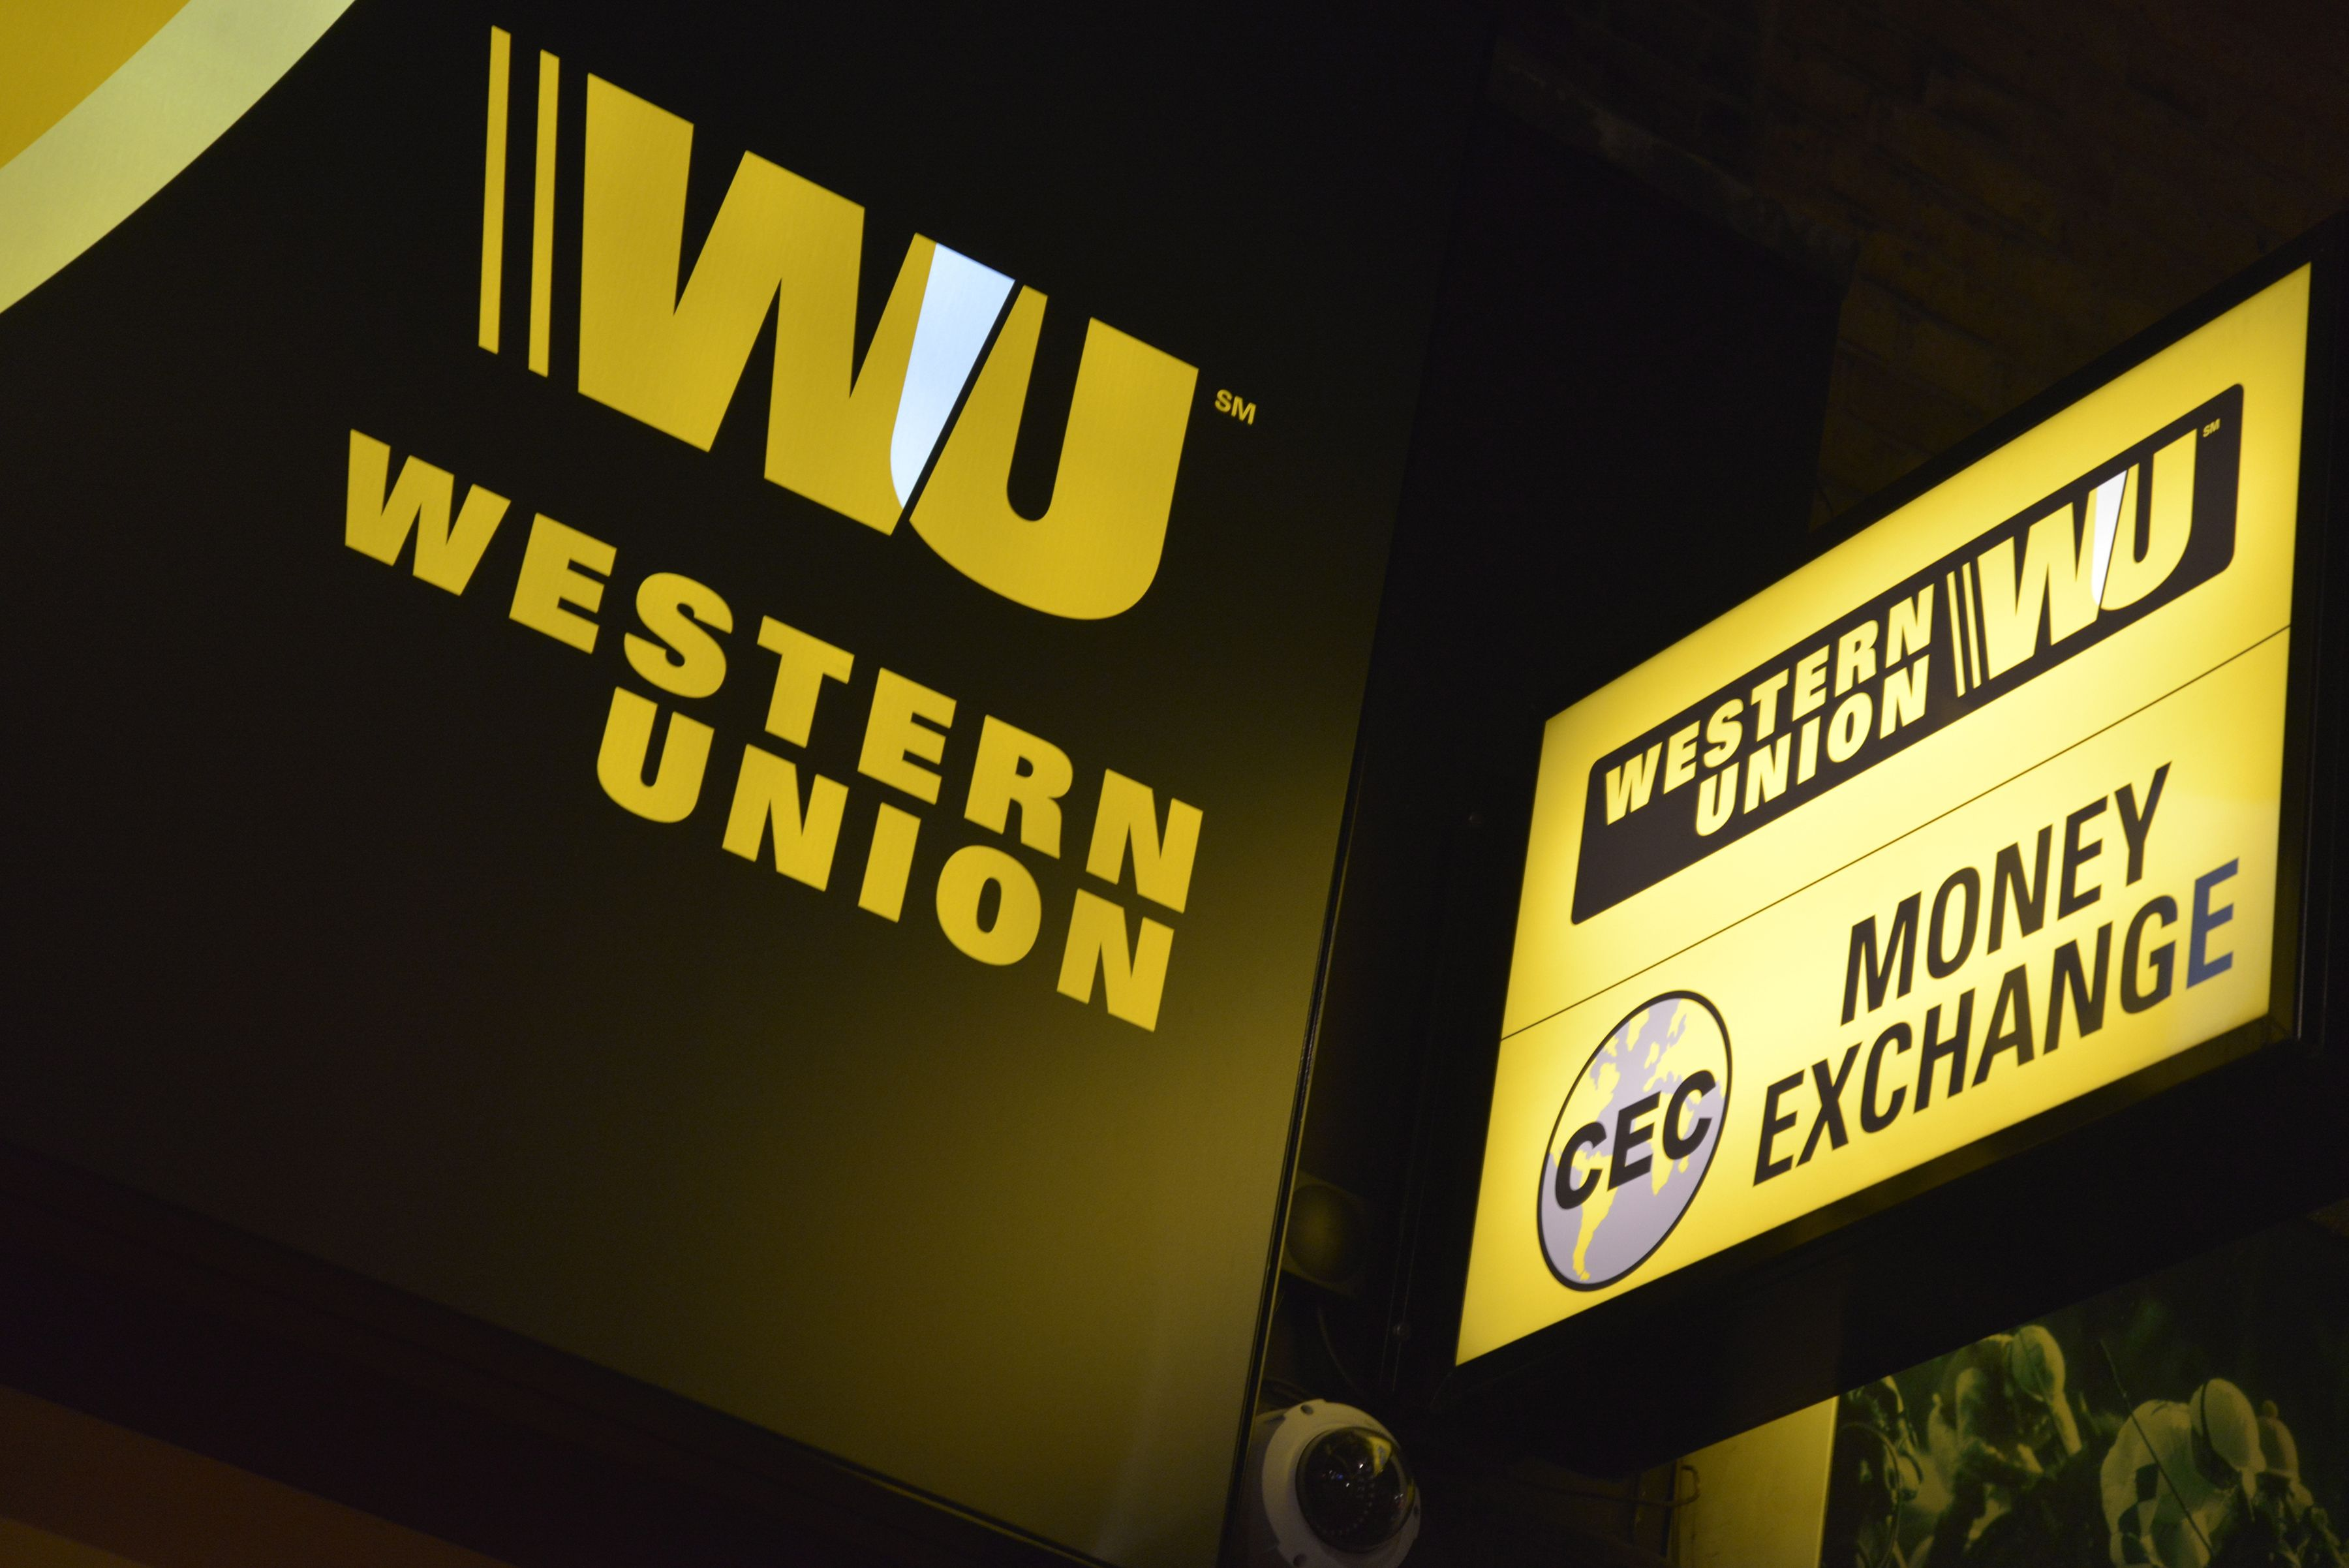 Western Union WU stock drops on fear of Facebook cryptocurrency Libra